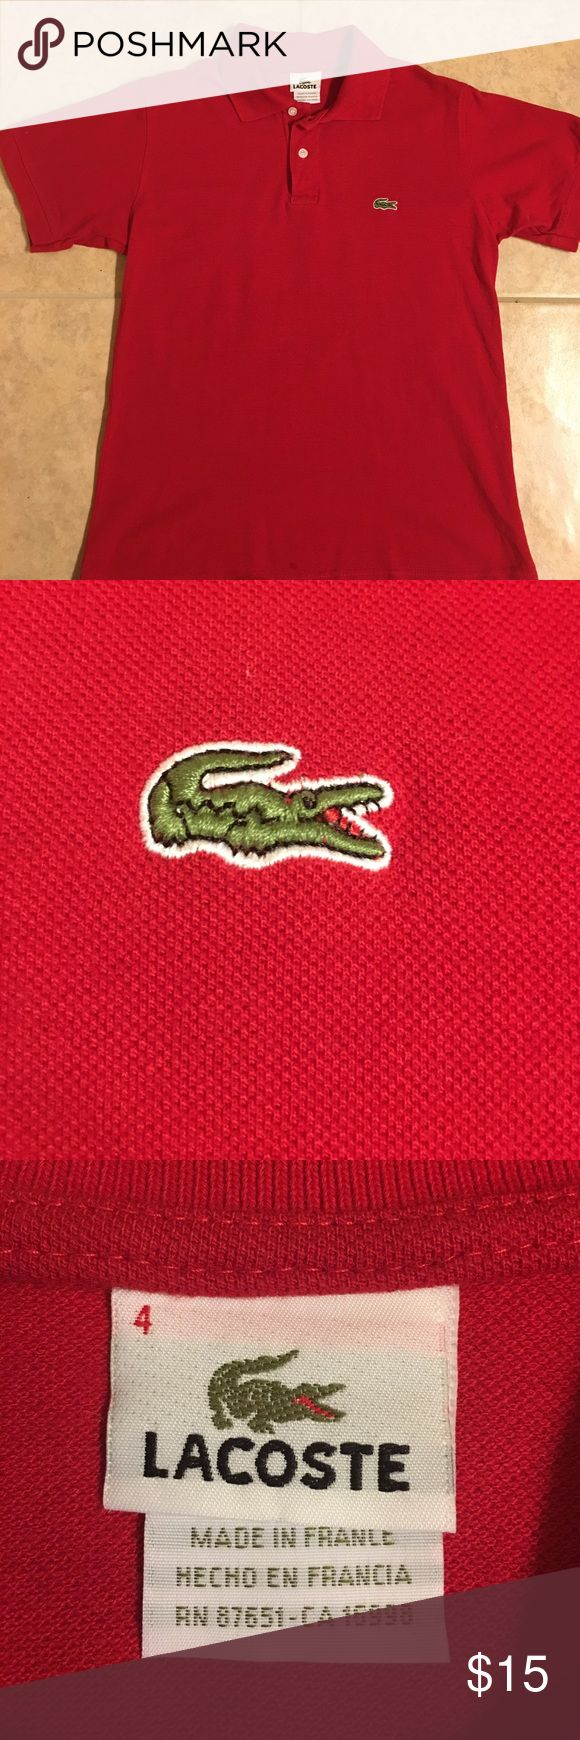 best 25 lacoste polo shirts ideas on pinterest where is ole